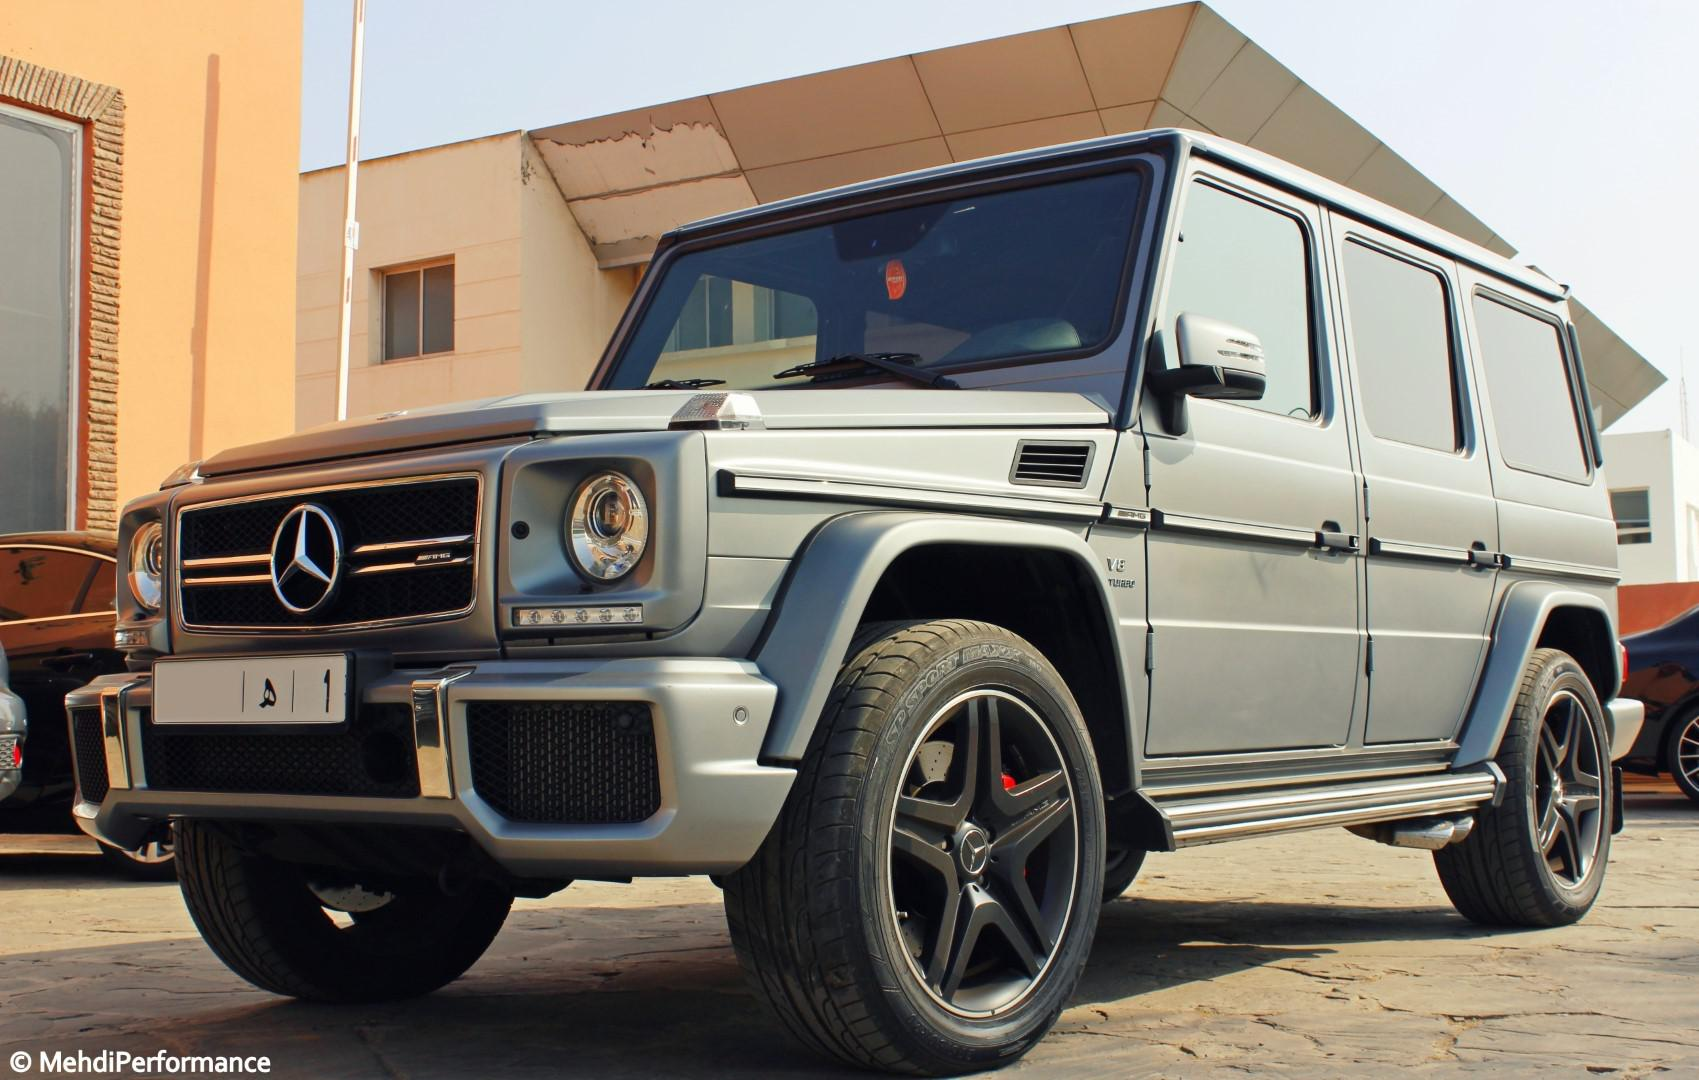 mercedes-amg-g63-un-4x4-de-conception-antique-catapulte-par-un-v8-biturbo-de-plus-de-500-ch-314-15.jpg